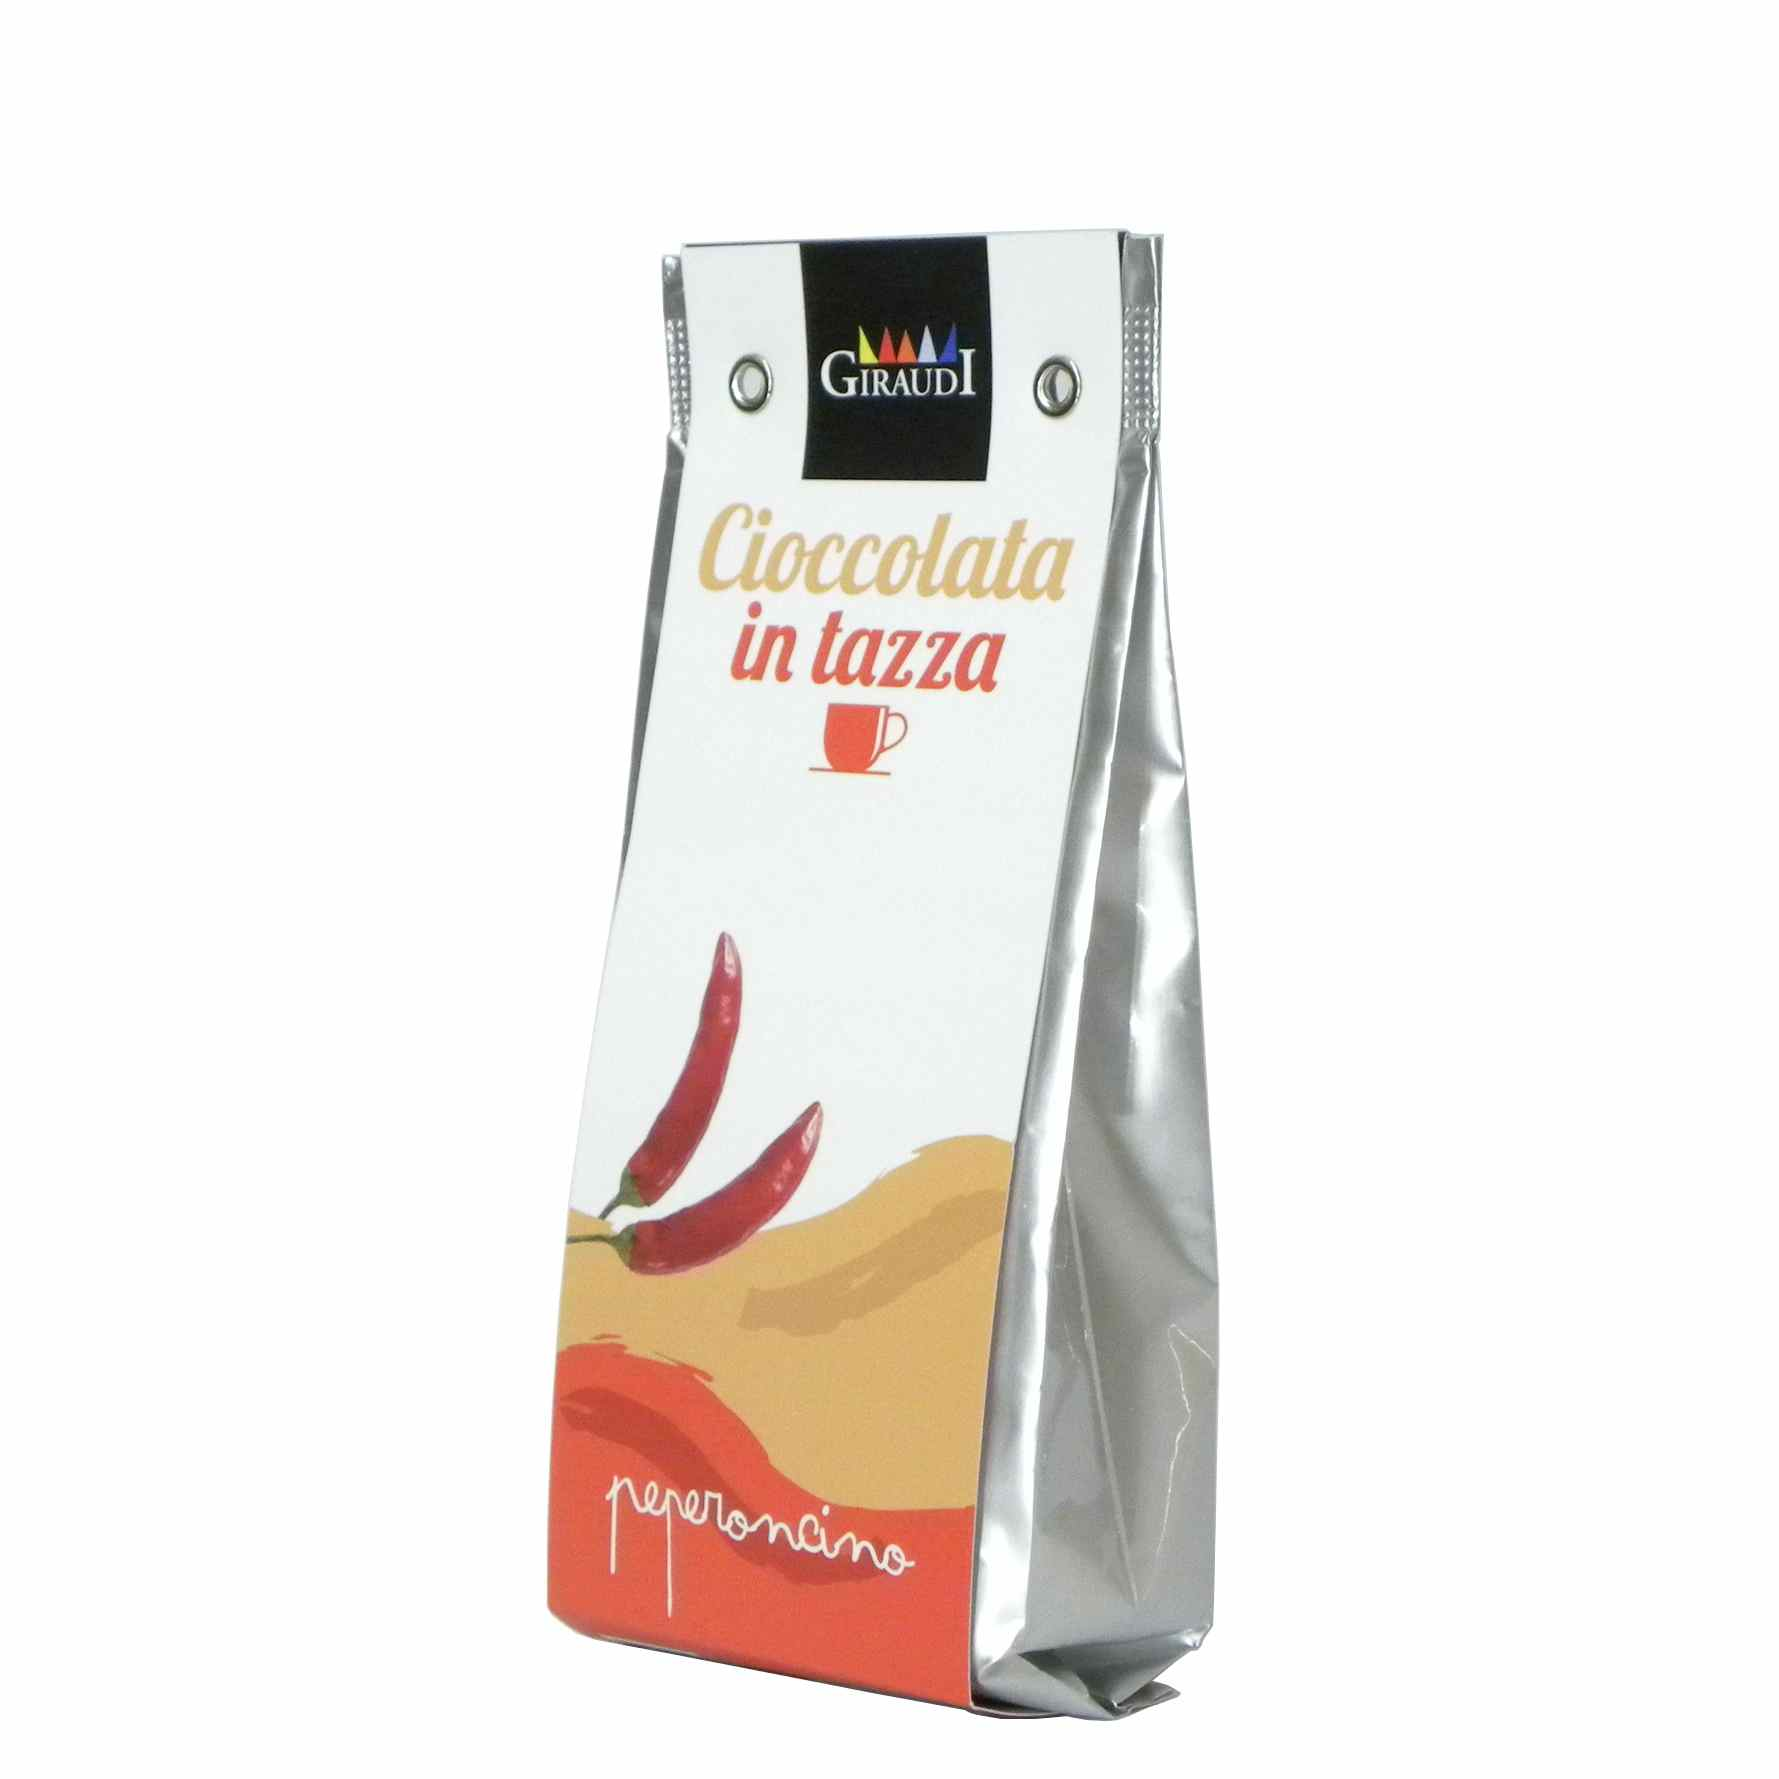 Giraudi cioccolata peperoncino – Giraudi chili pepper hot chocolate – Gustorotondo – Italian food boutique